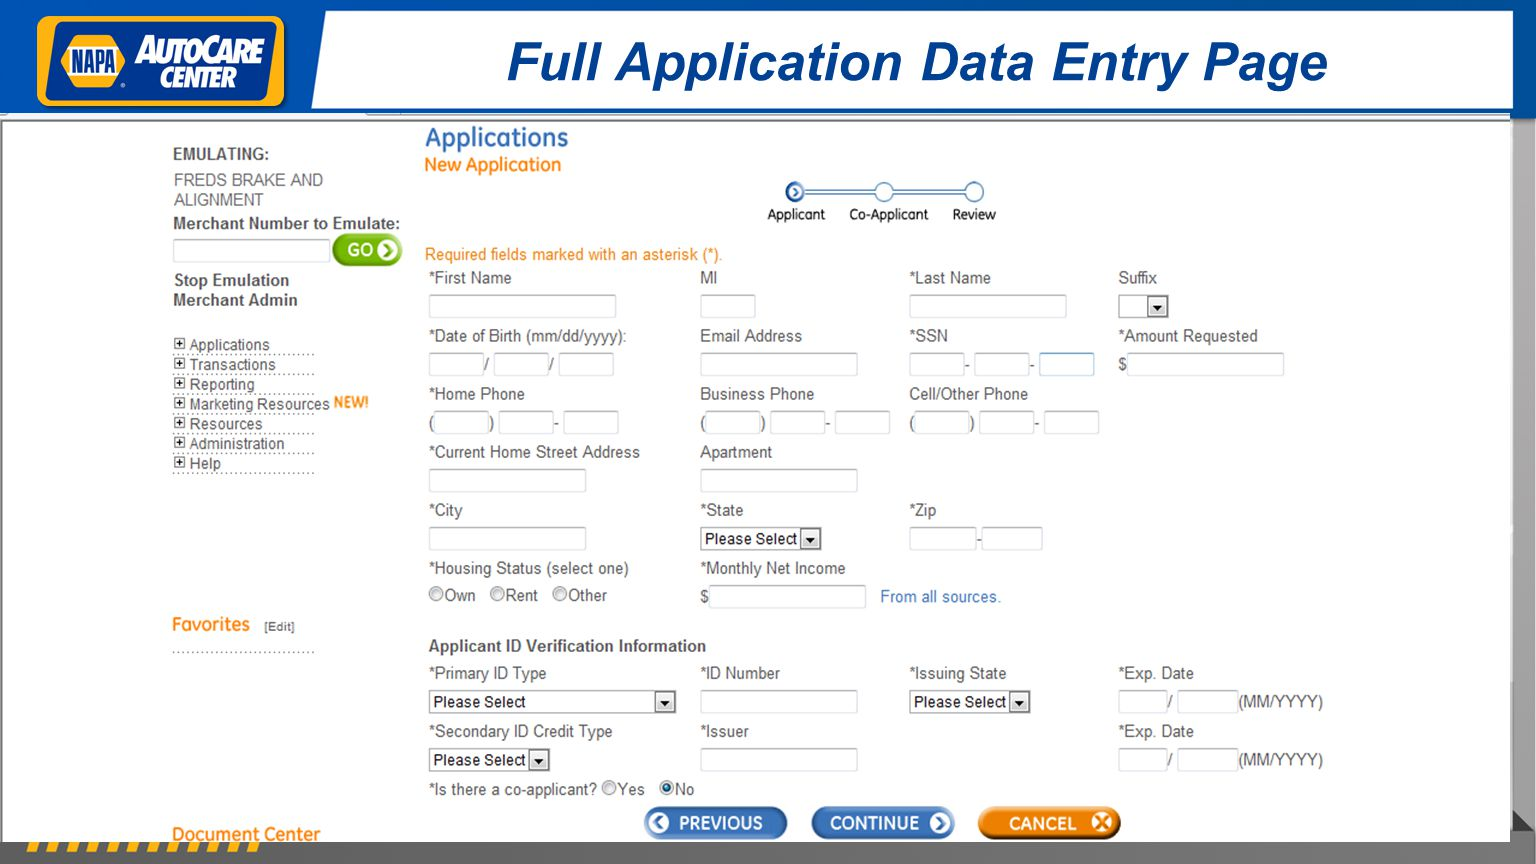 Full Application Data Entry Page